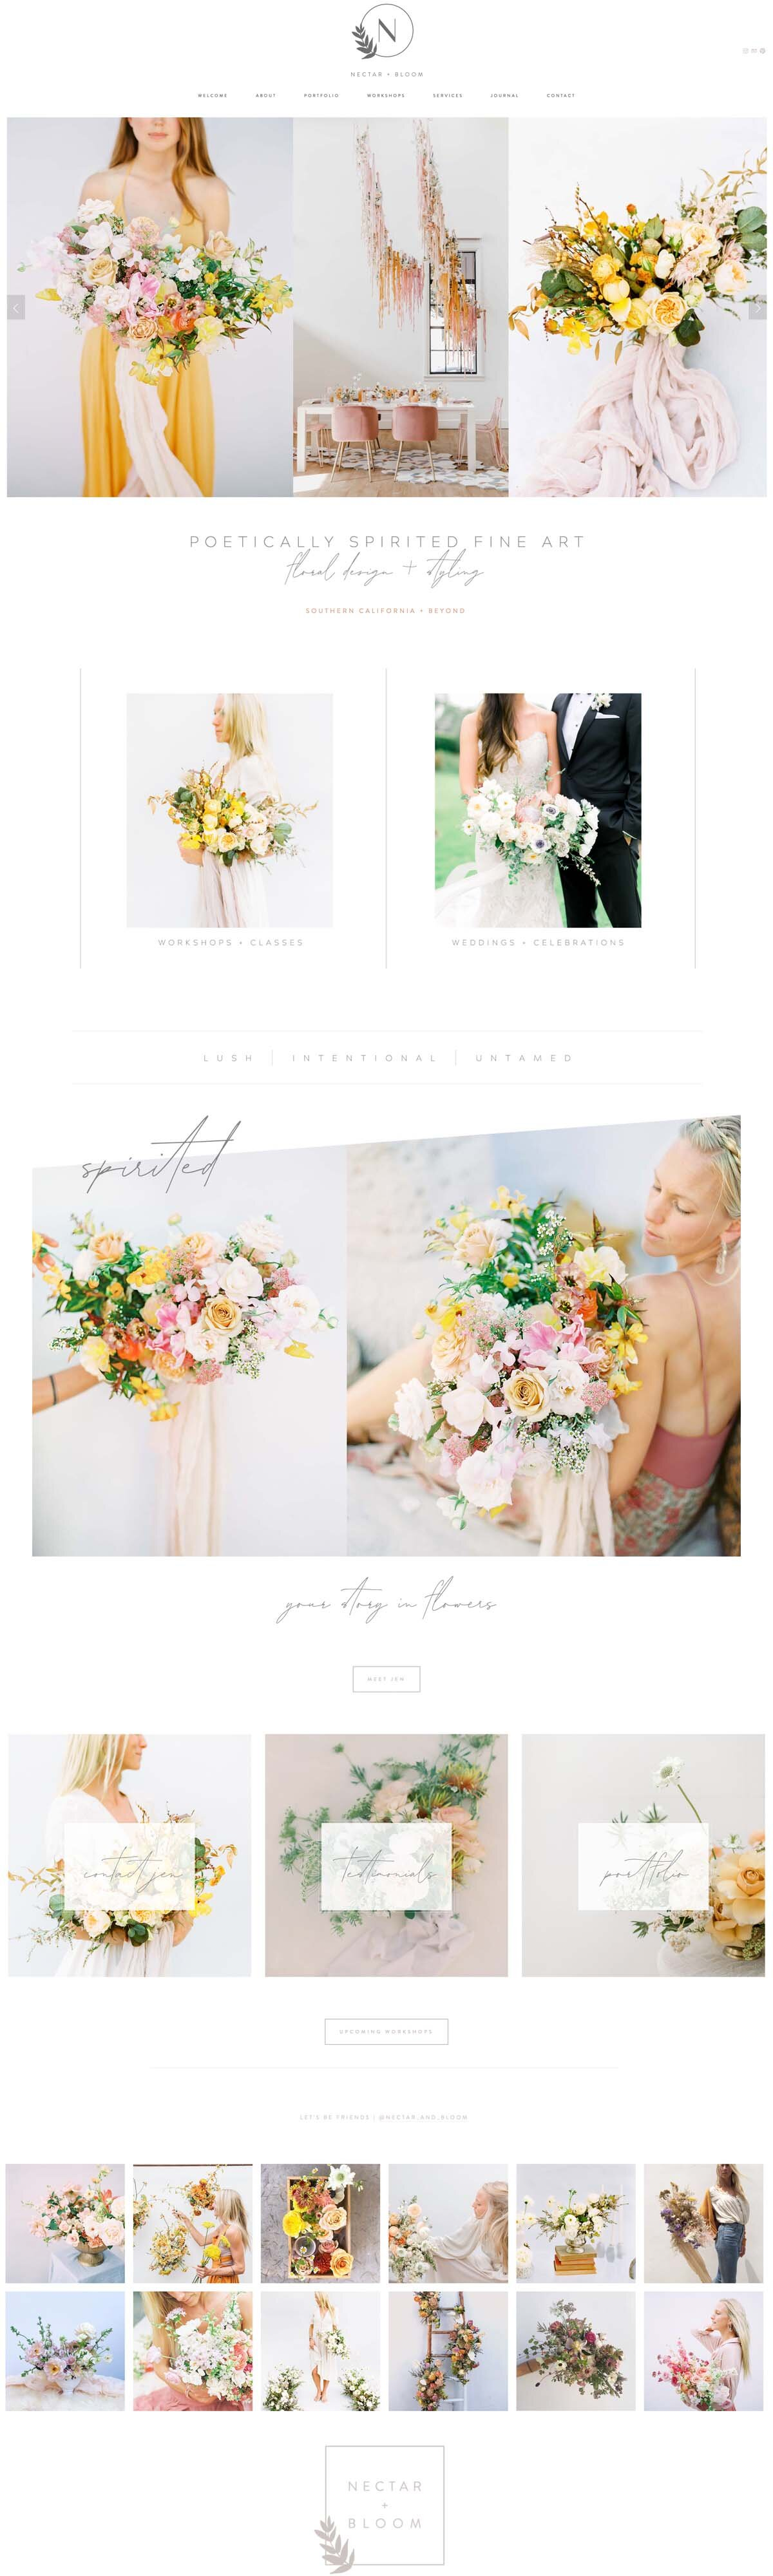 Nectar and Bloom Floral Design San Diego Website Designer | The Editor's Touch | Southern California Florist